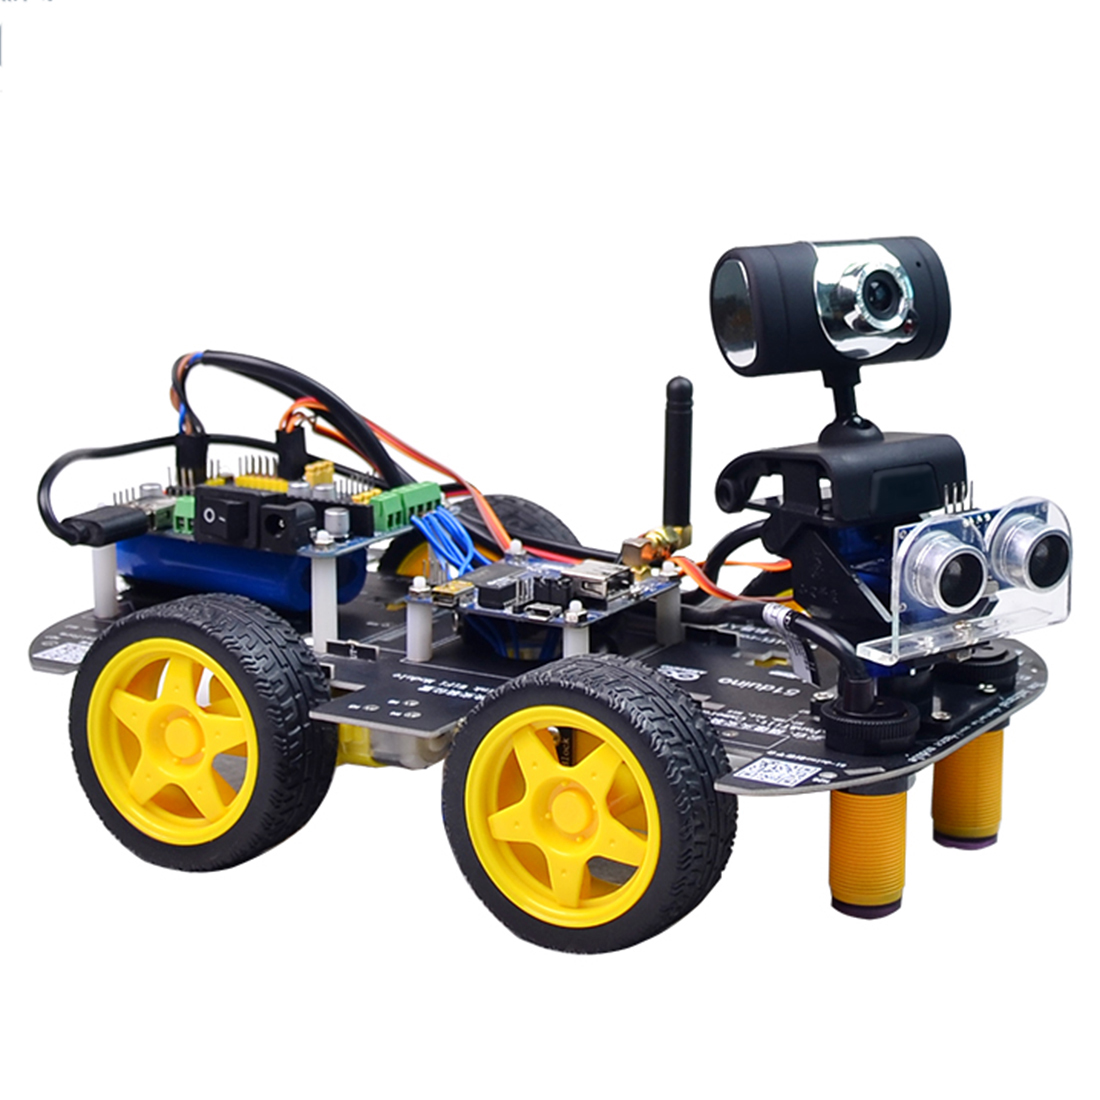 Hot Programmable Robot DIY Wifi + Bluetooth Steam Educational Car With Graphic Programming XR BLOCK Linux For Arduino UNO R3